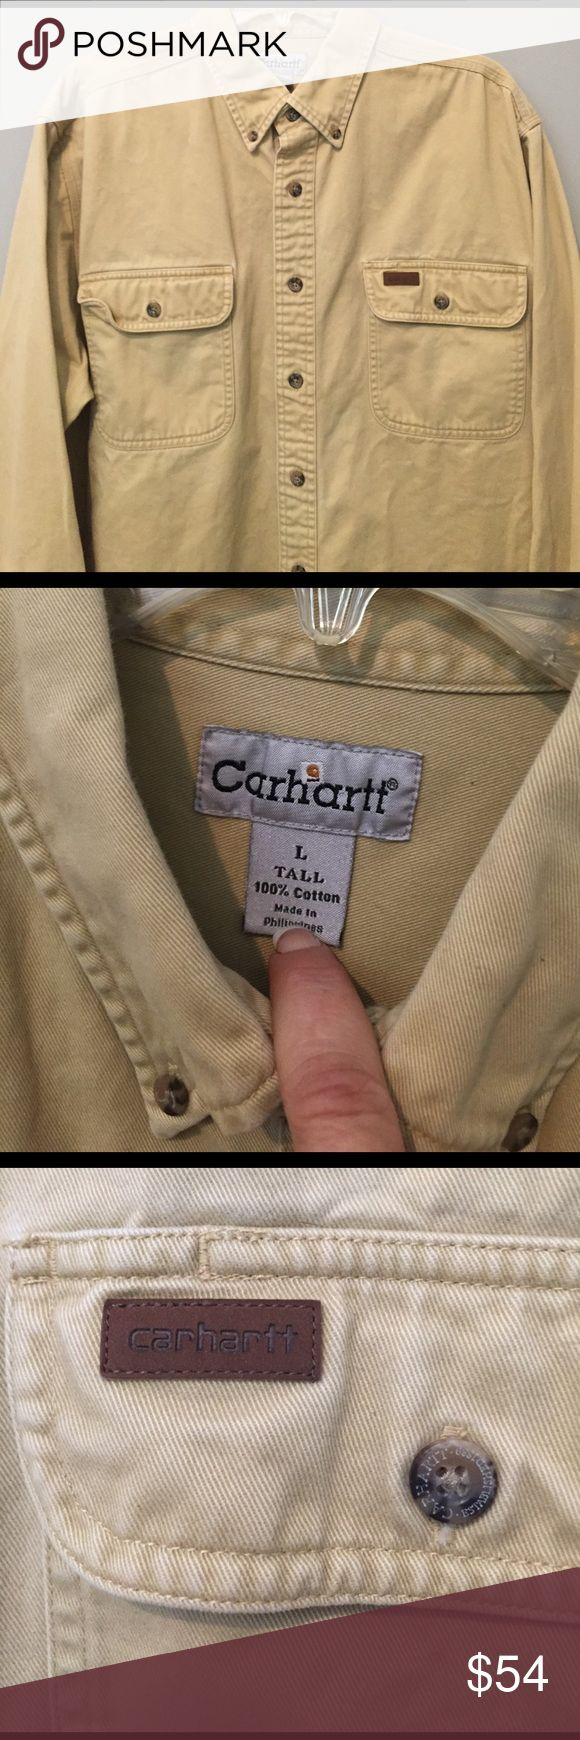 Carhartt Heavy Work Shirt 100% Cotton - Large Tall Like new condition, front button, heavy cotton work shirt,size Large Tall Carhartt Shirts Casual Button Down Shirts